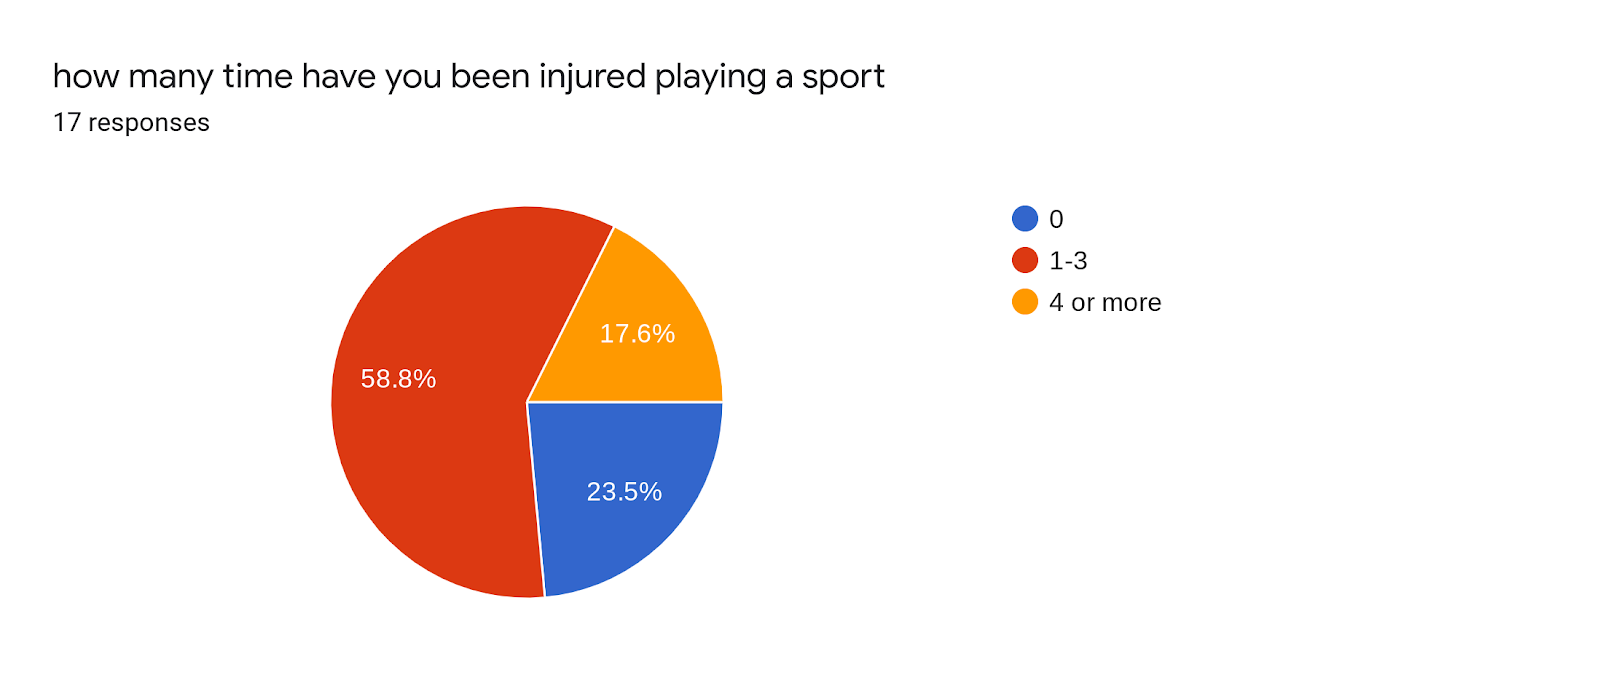 Forms response chart. Question title: how many time have you been injured playing a sport. Number of responses: 17 responses.